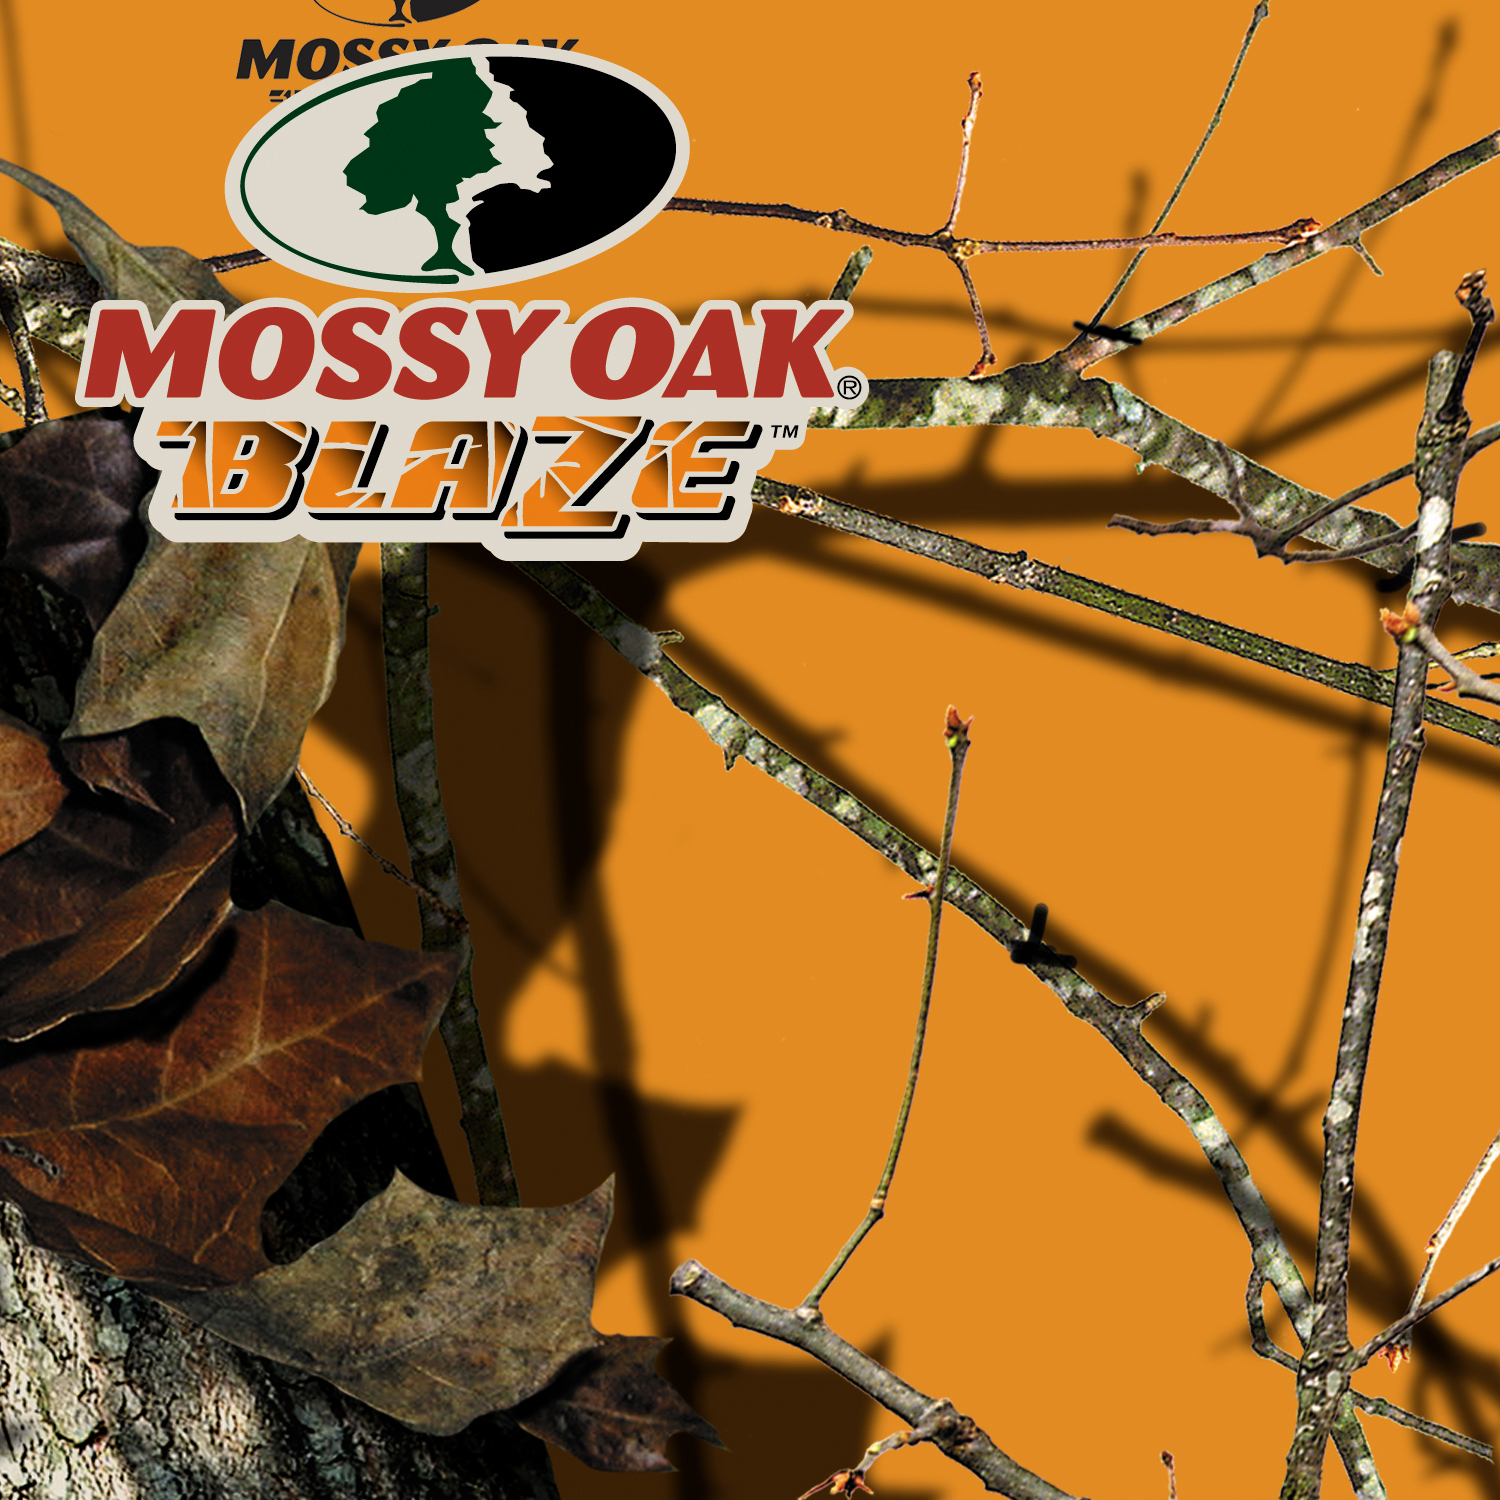 mossy oak duck blind wallpaper